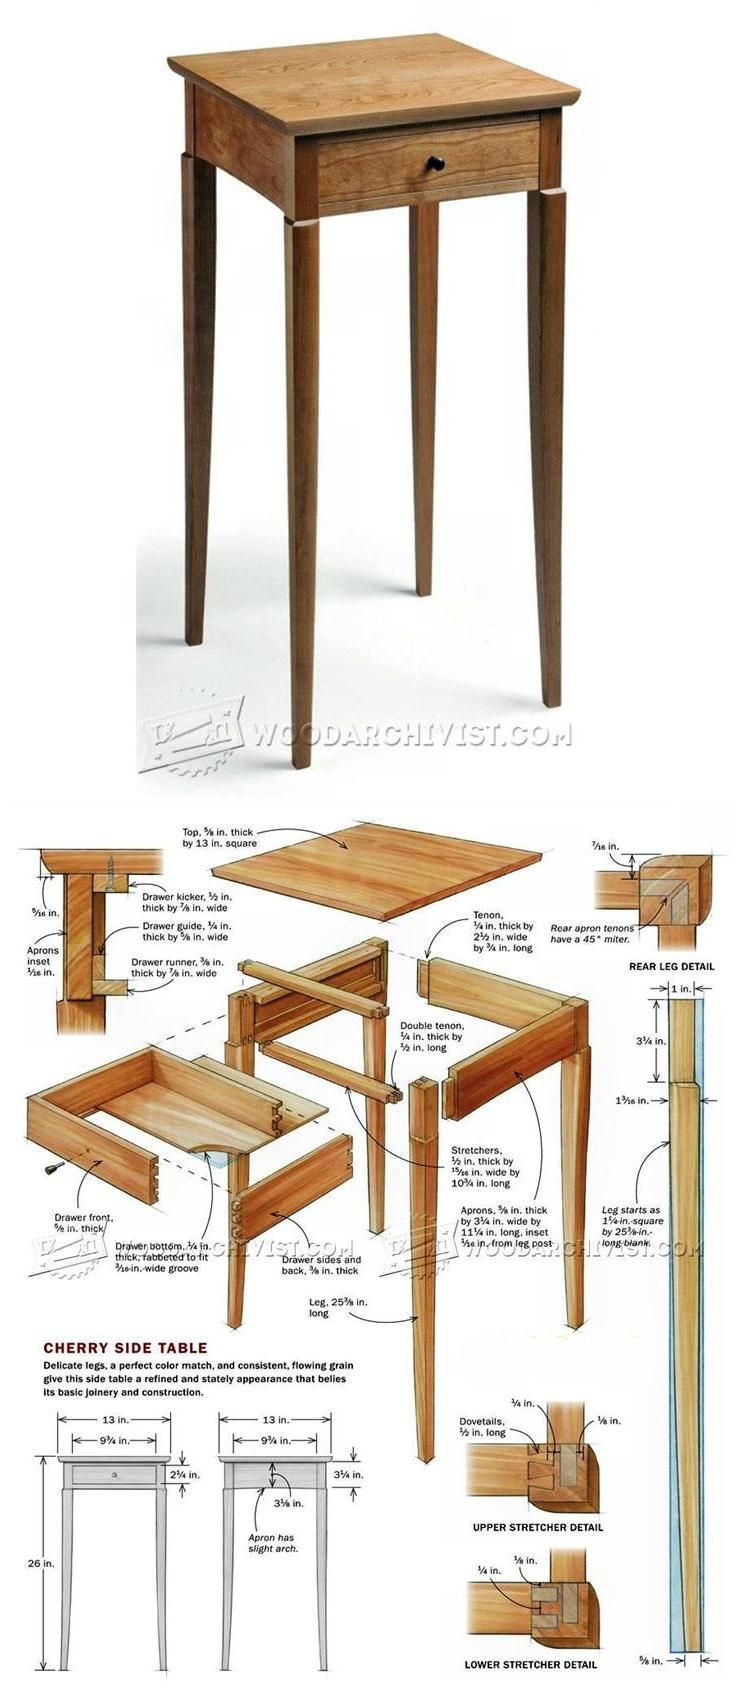 Build Side Table Furniture Plans And Projects Woodarchivist Com Woodworking Furniture Plans Woodworking Plans Diy Table Furniture Plans